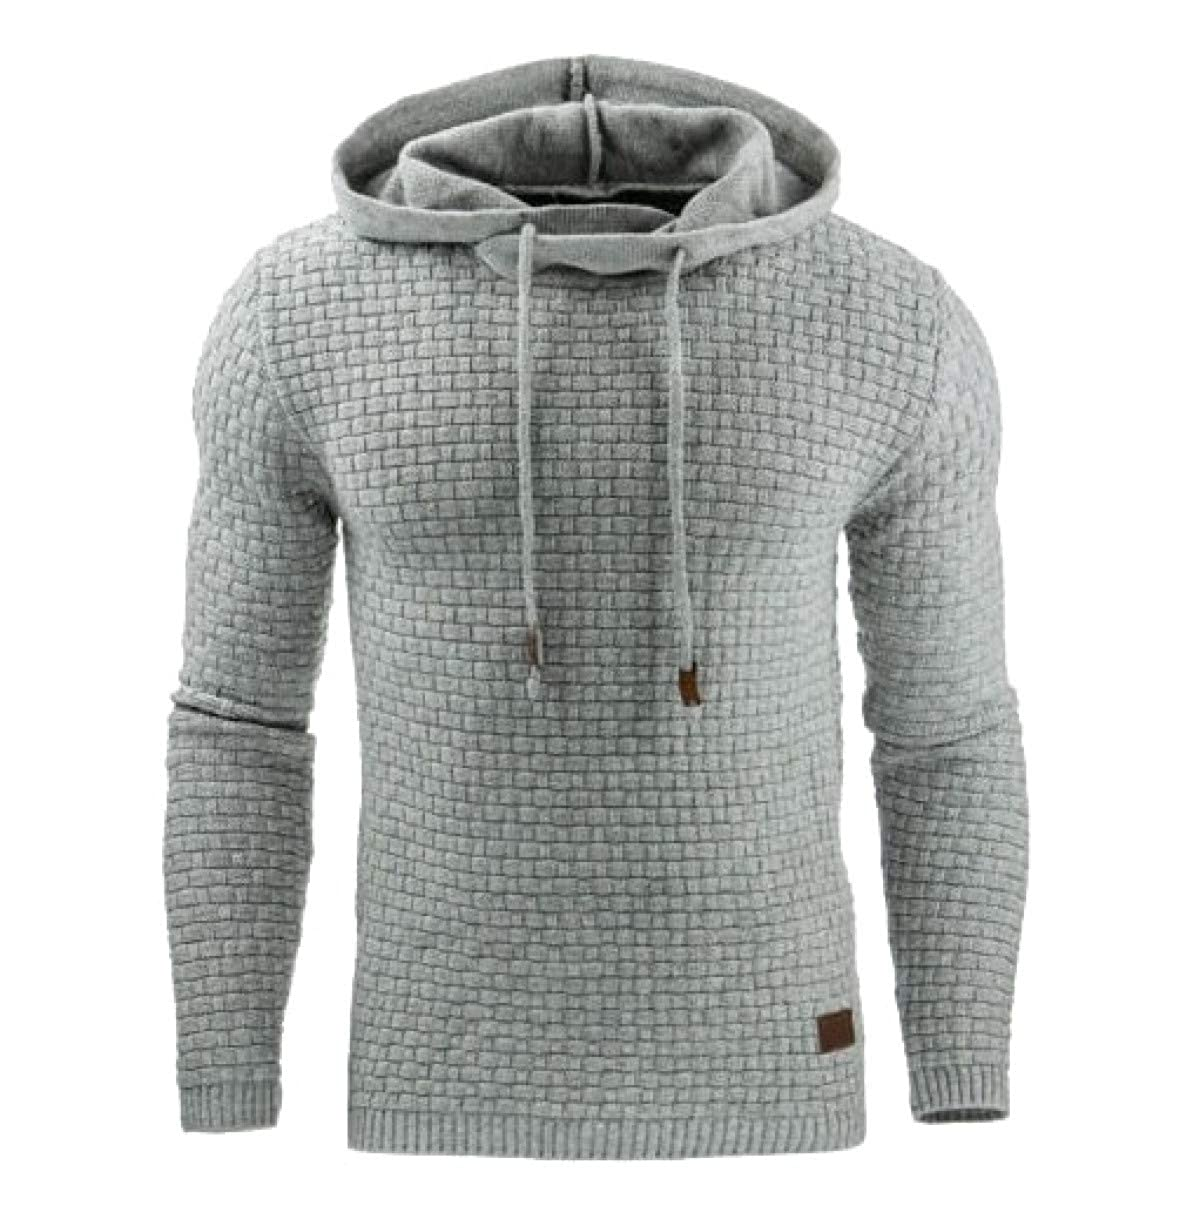 Amazon.com: WEEKEND SHOP Hoodies for Men Men Hoodies Sweatshirts Mens Coats Male Sweater for Men Hoodies: Clothing